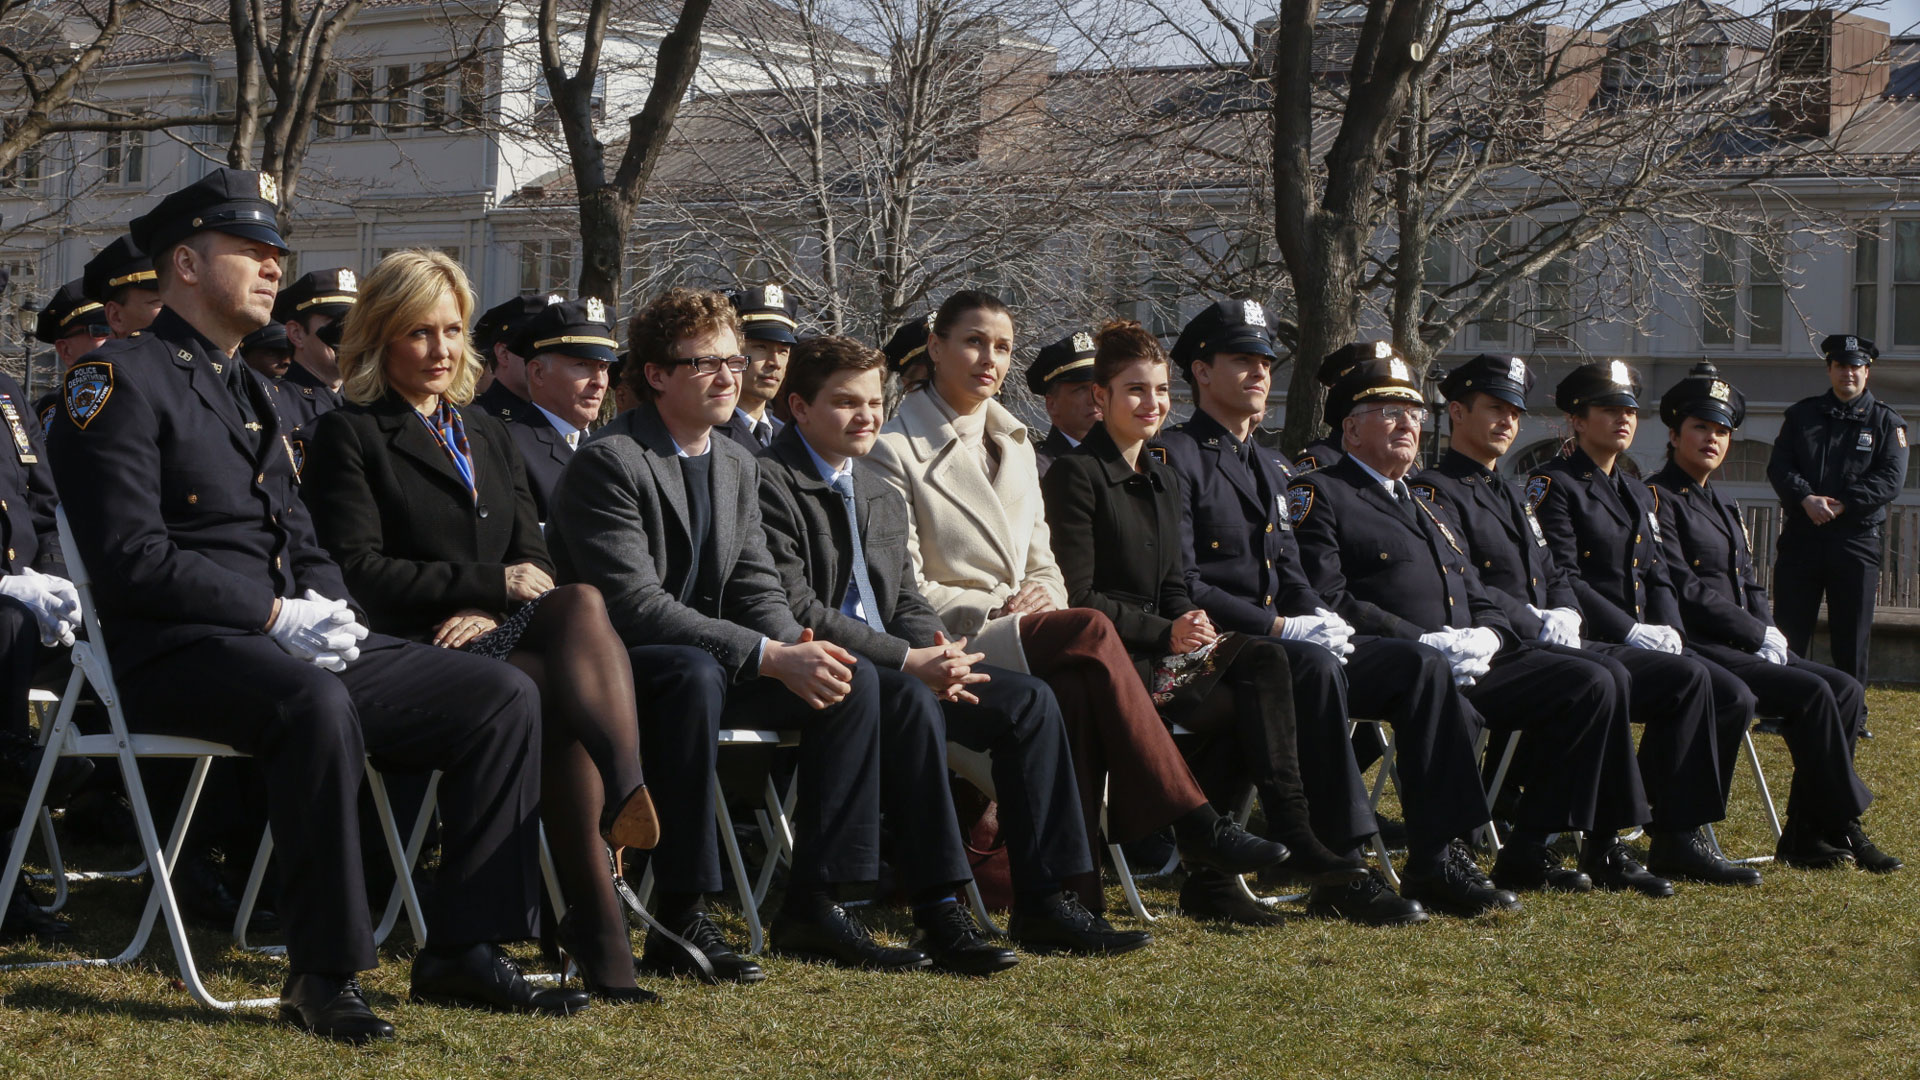 The Reagans gather in their dress blues.